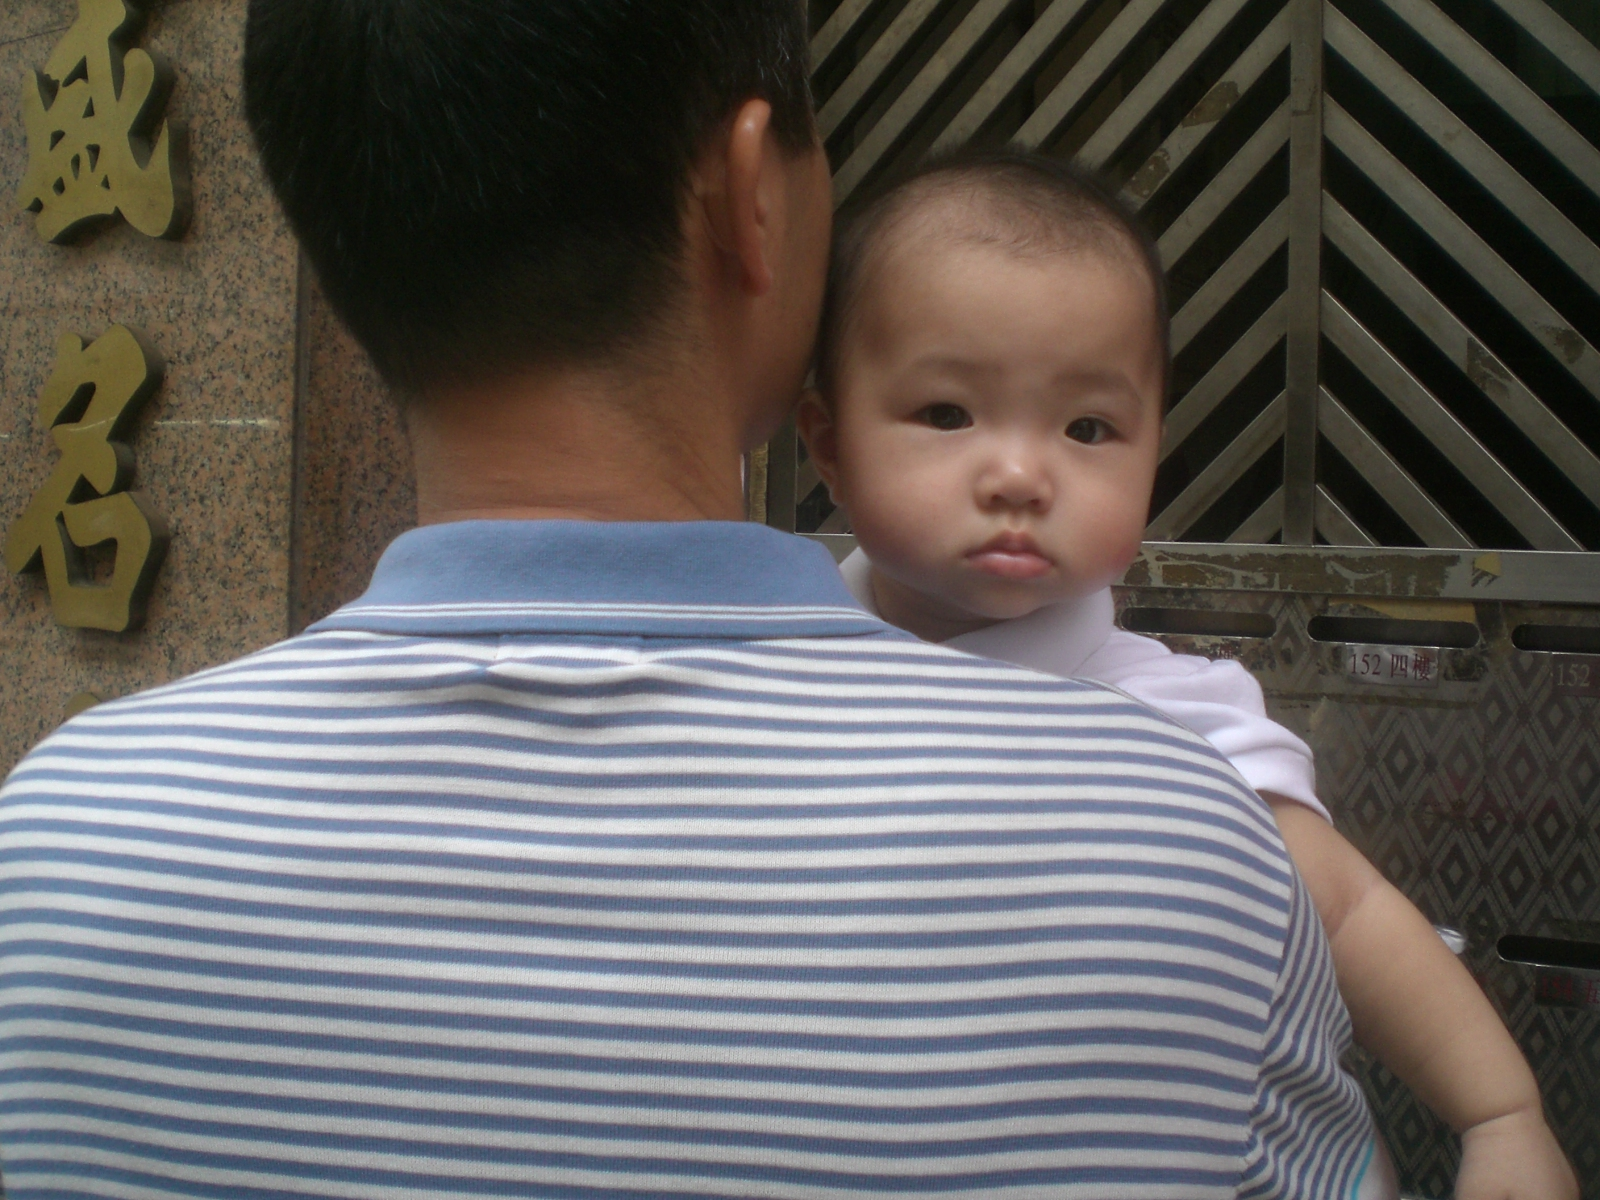 """Credit: """"Baby girl Hong Kong"""" by Foudeelau. Licensed CC BY-SA 3.0 via Wikimedia Commons - https://commons.wikimedia.org/wiki/File:Baby_girl_Hong_Kong.JPG#/media/File:Baby_girl_Hong_Kong.JPG"""